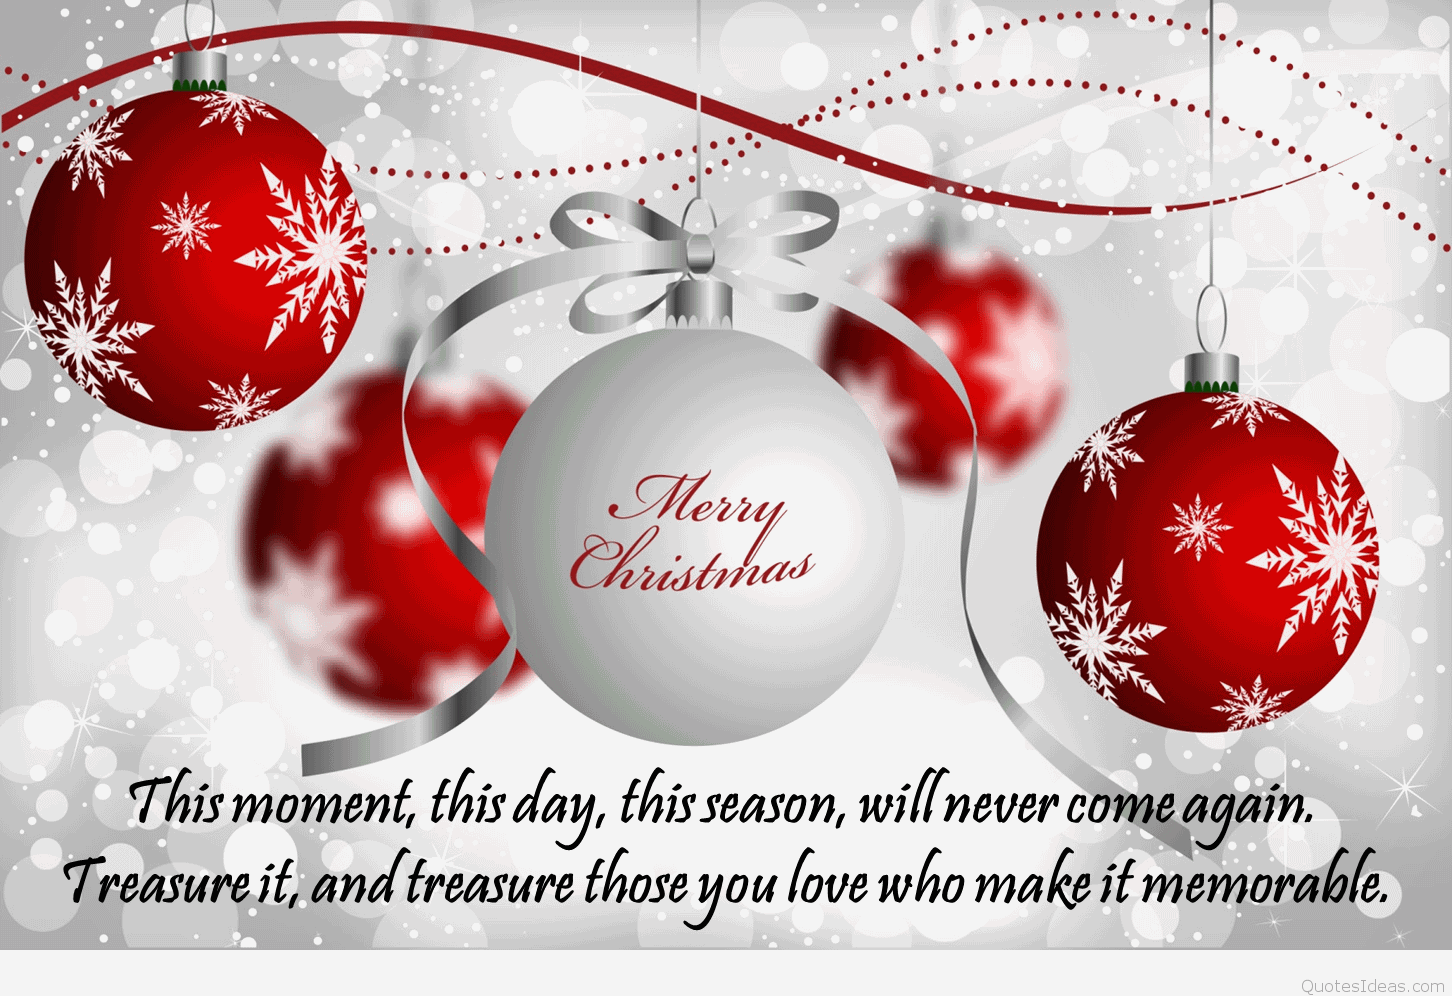 Christmas Quotes For Family Image Picture Photo Wallpaper 13